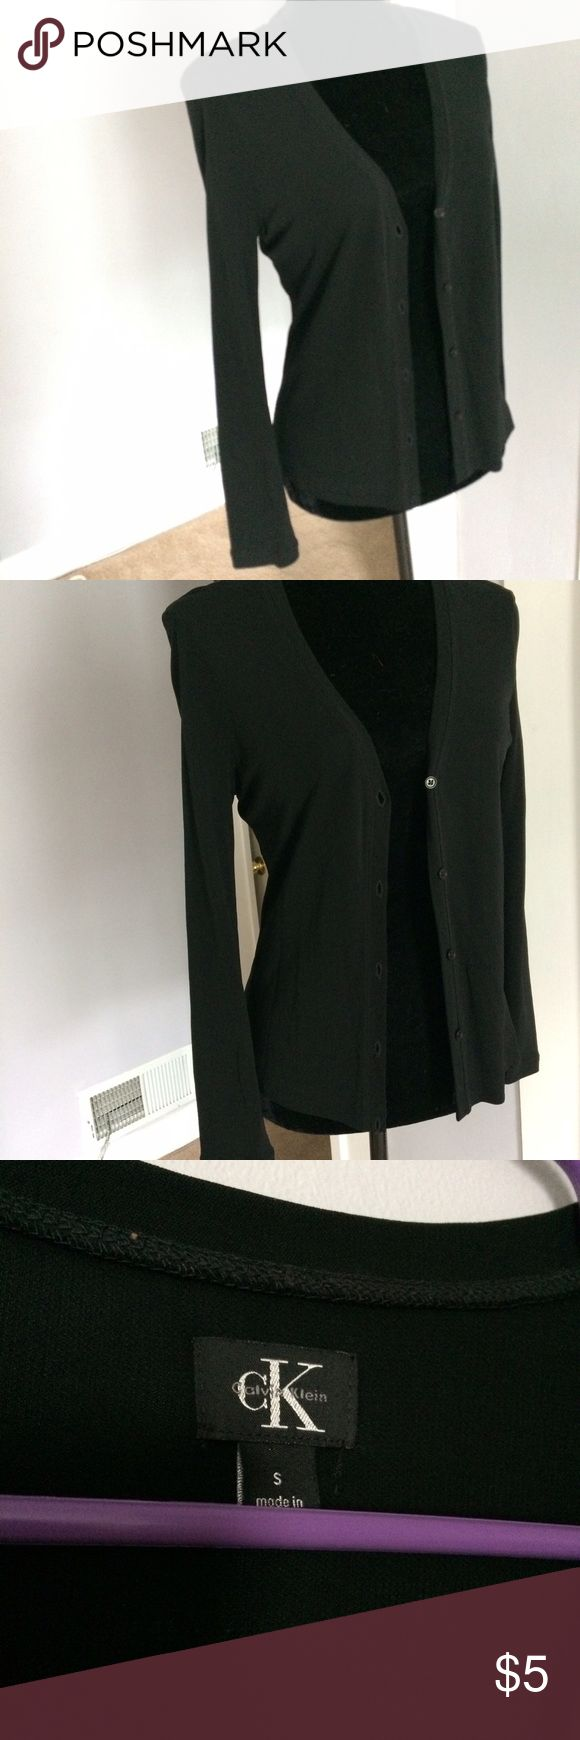 CK Calvin Klein cardigan Black polyester feel cardigan by Calvin Klein. Size small, buttons up front. Calvin Klein Tops